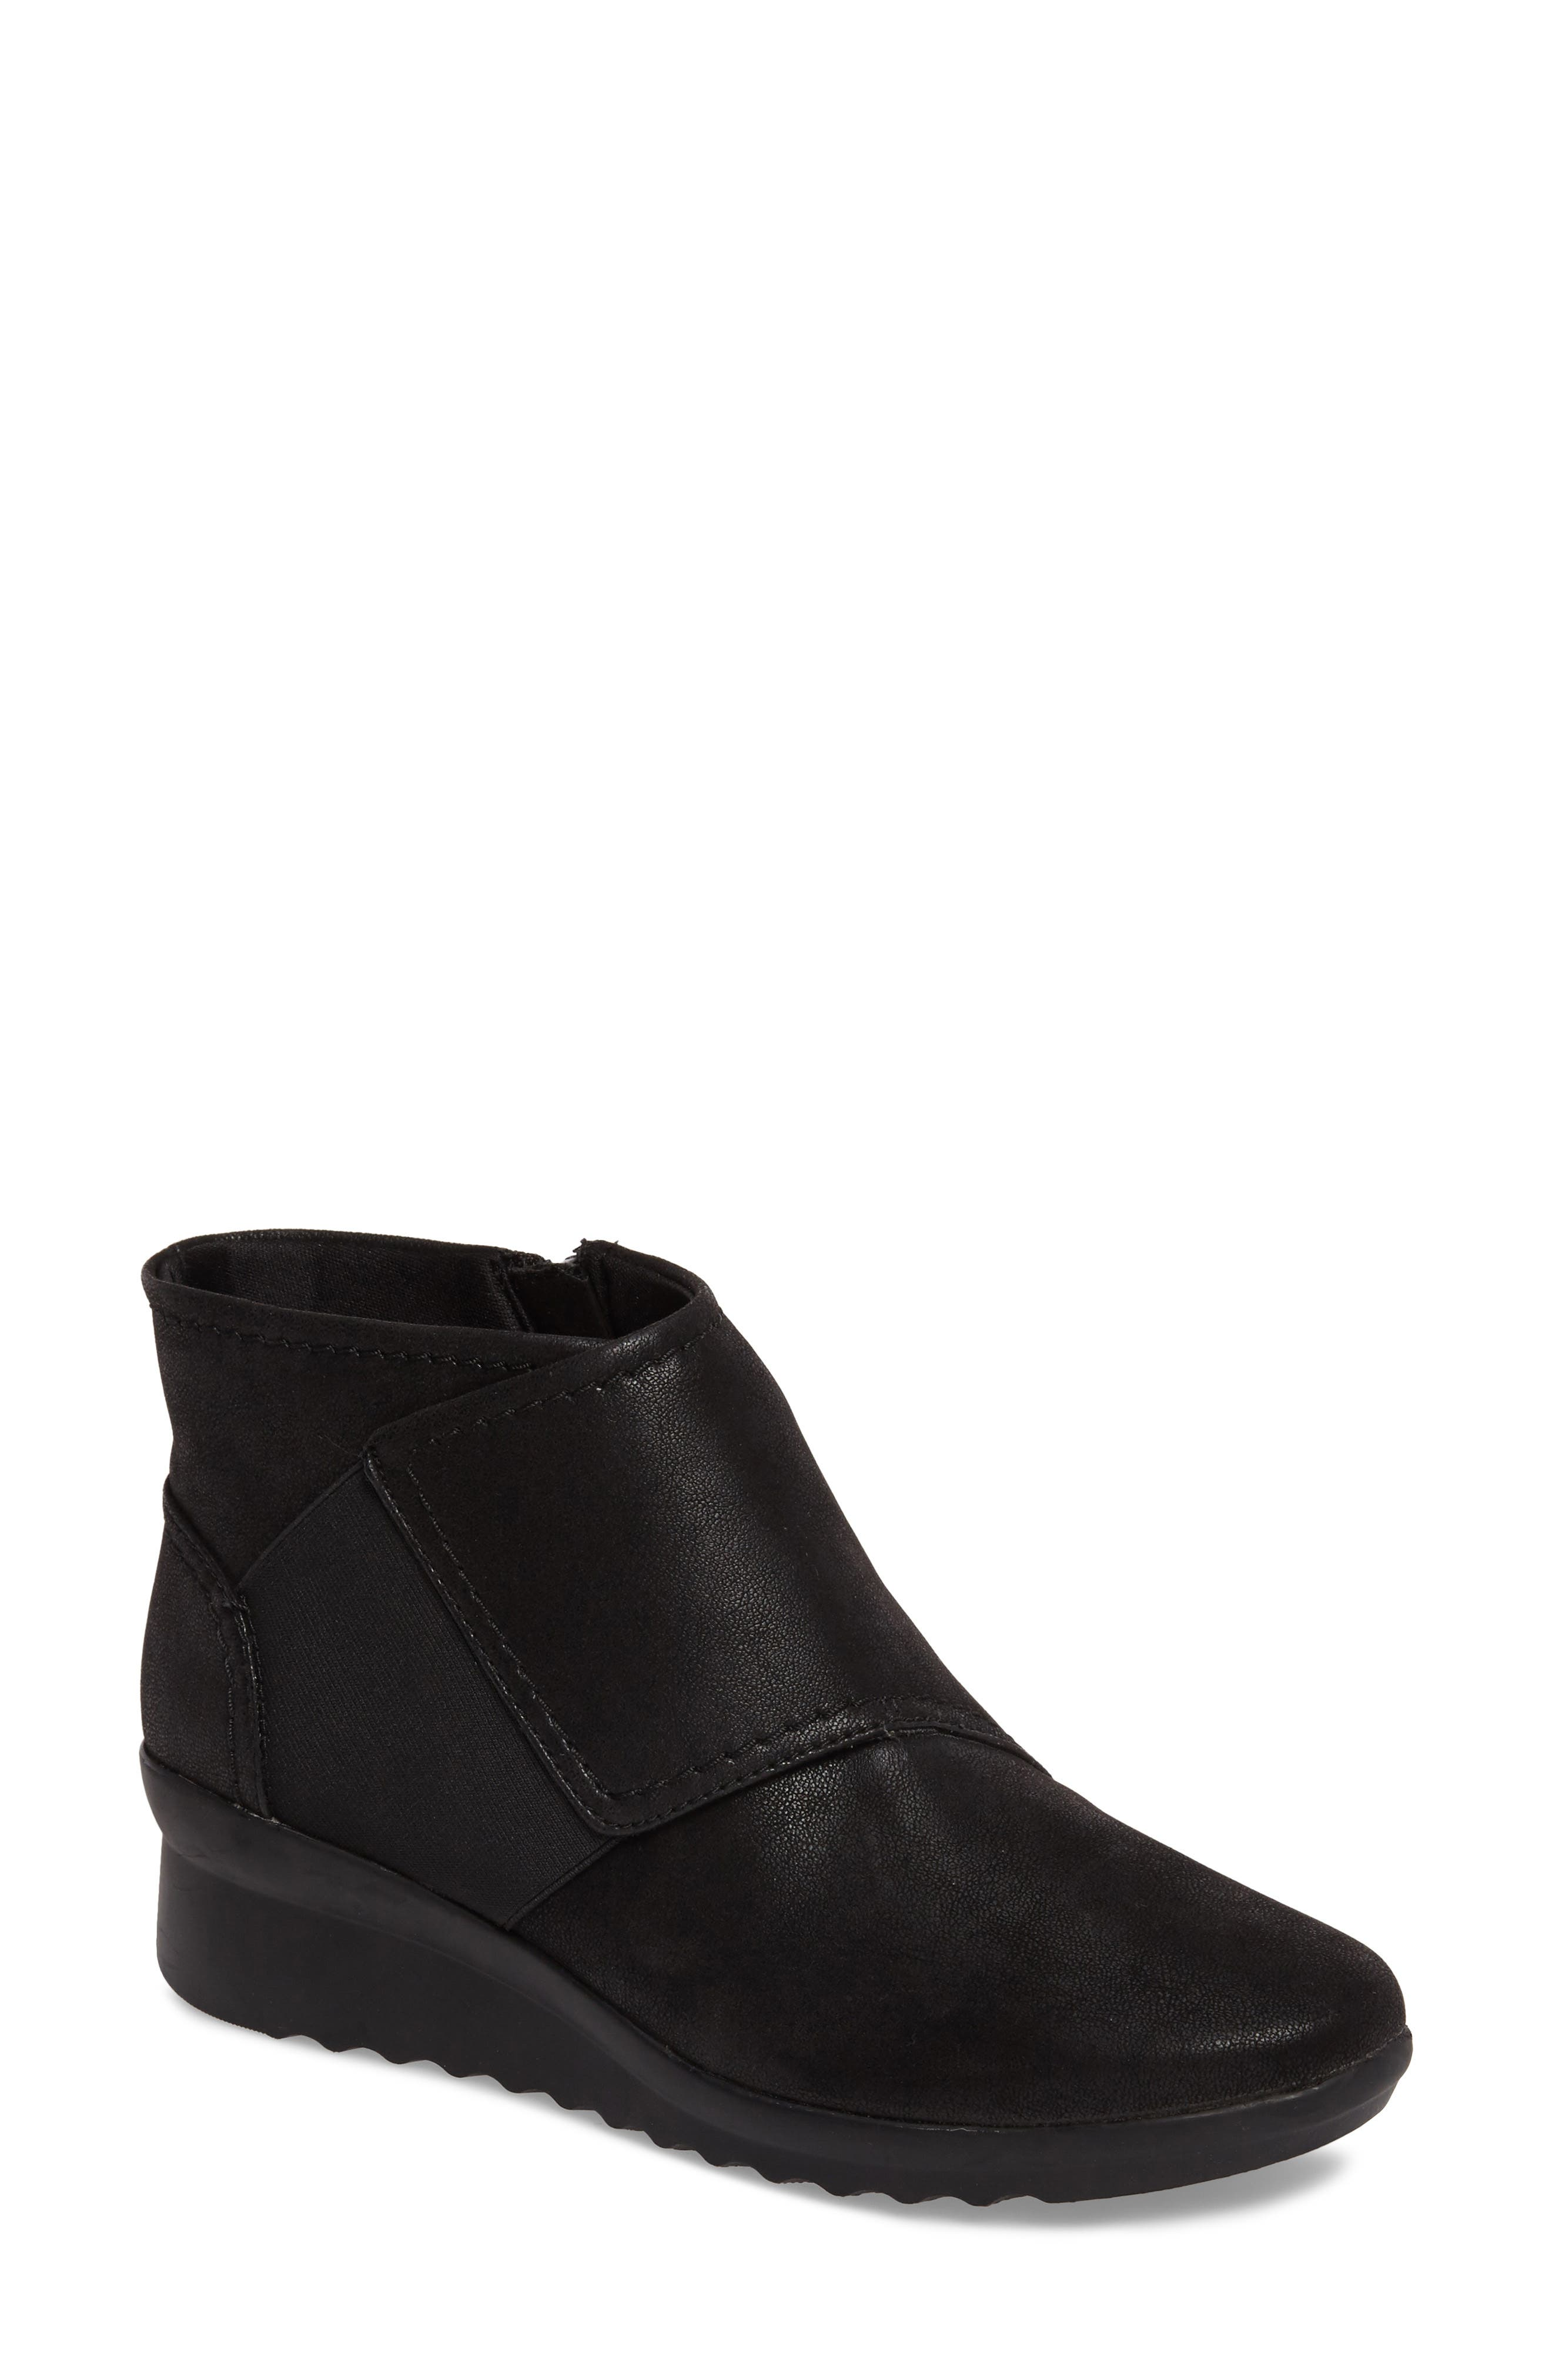 Caddell Rush Bootie,                         Main,                         color, 005